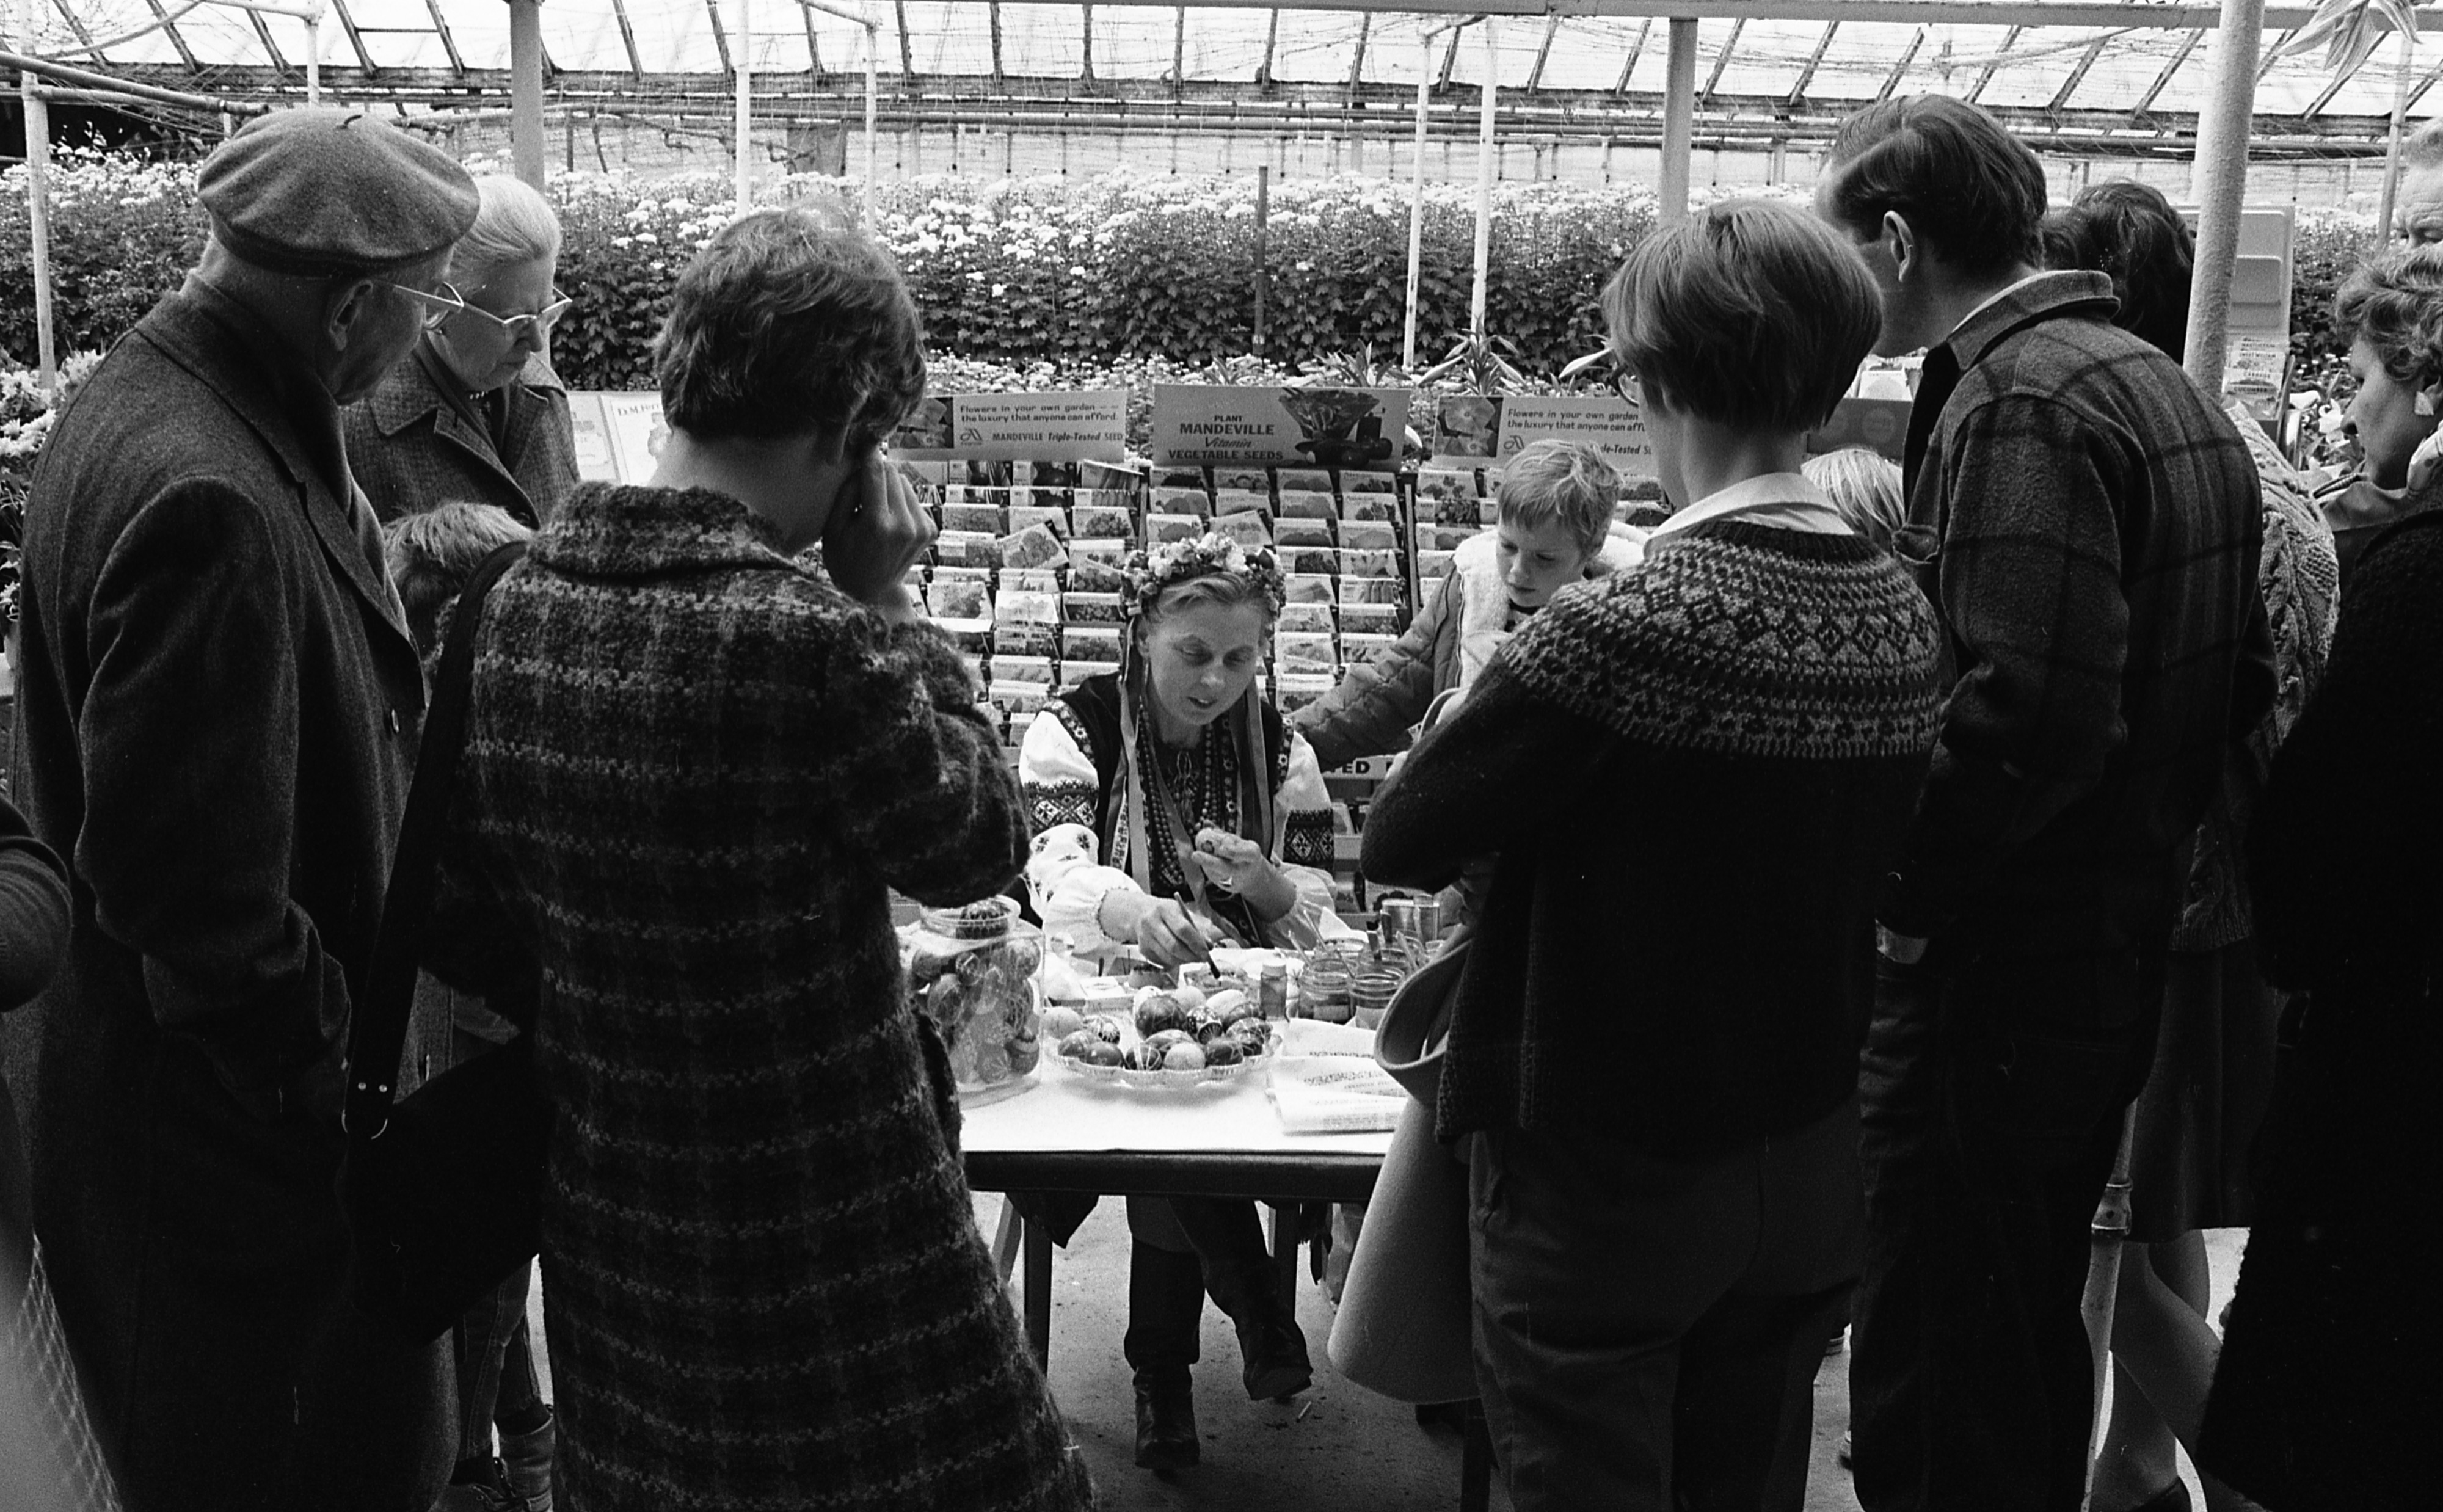 Cecelia Ference Talks To Group About Decorating Easter Eggs, April 1969 image